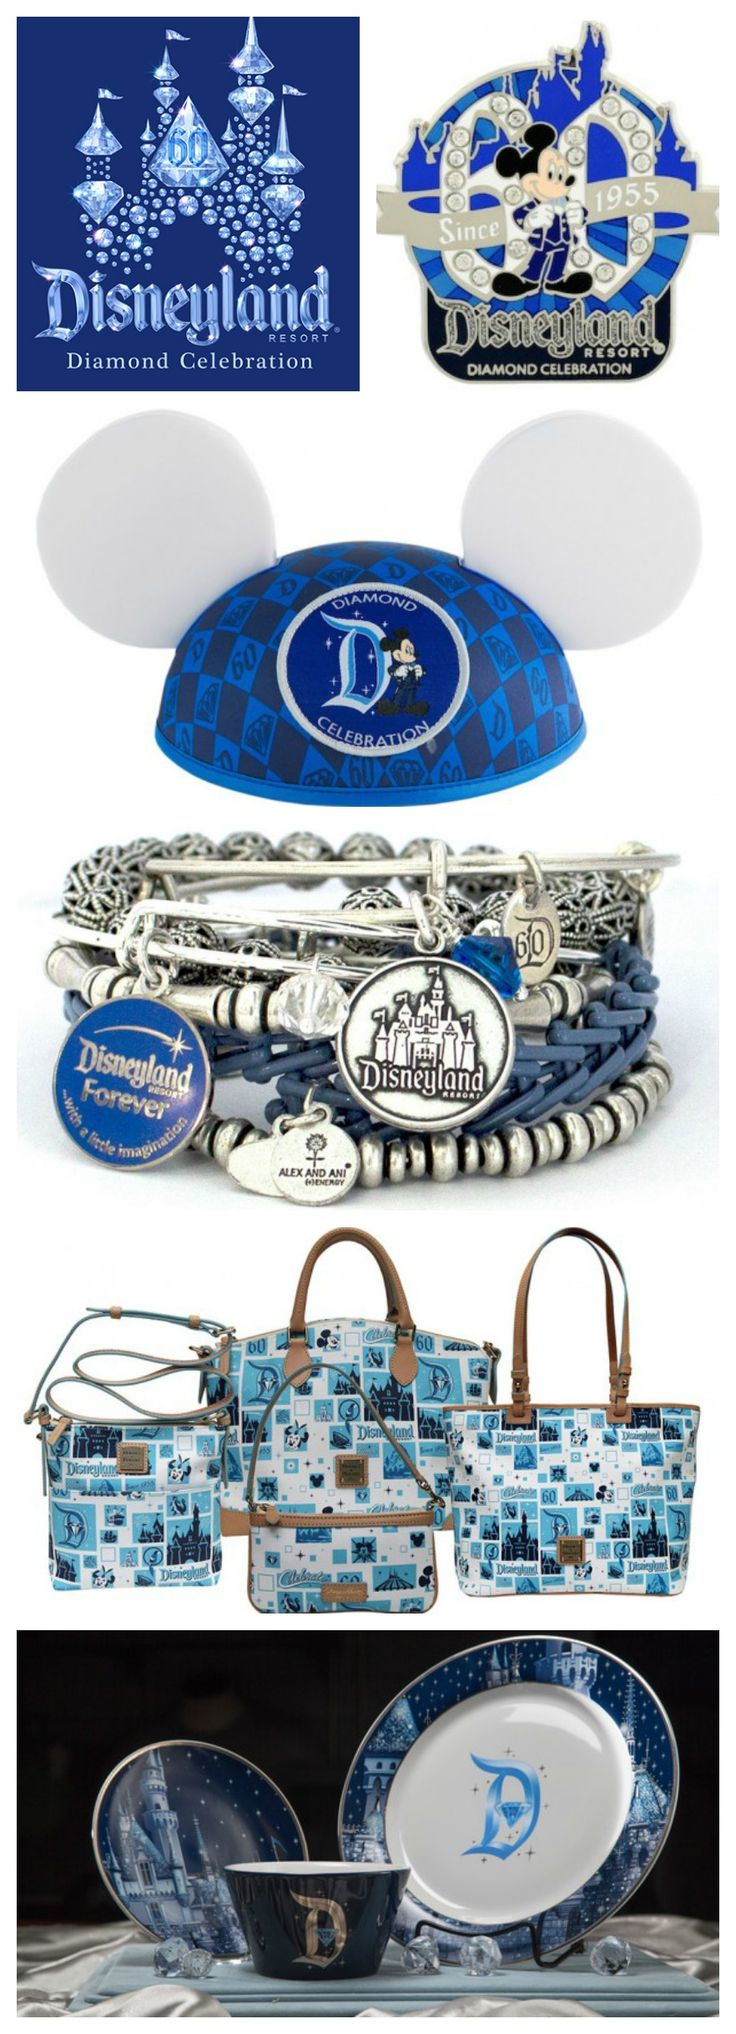 Get a closer look at some of the dazzling items available for Disneyland's Diamond Anniversary Celebration  #Disneyland60 #Disneyland #shopping